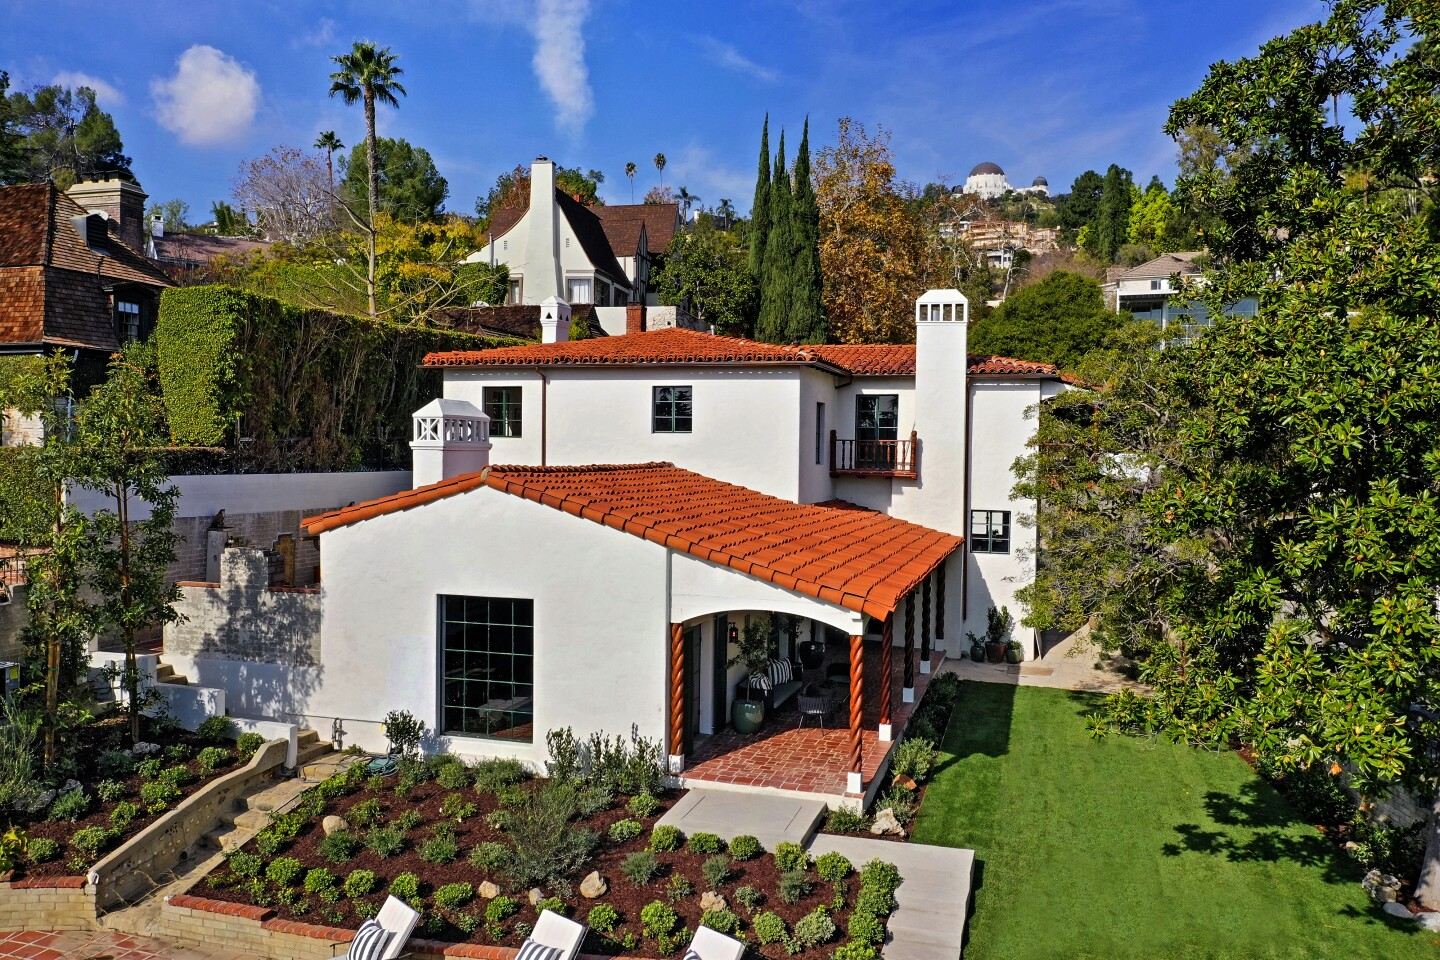 The walled and gated compound, once home to the Rev. Louis H. Evans, the organizing pastor of Bel-Air Presbyterian Church, was built in 1929 and recently renovated and restored. Listed for $4.877 million, the Spanish Colonial-style residence features such original details as handcrafted hardware, antique tilework and cast-iron windows. A two-story entry gives way to a living room set beneath cathedral-style ceilings. A breezeway connects the multilevel residence to a guest apartment above the garage. (Jo David / Charmaine David Photography)